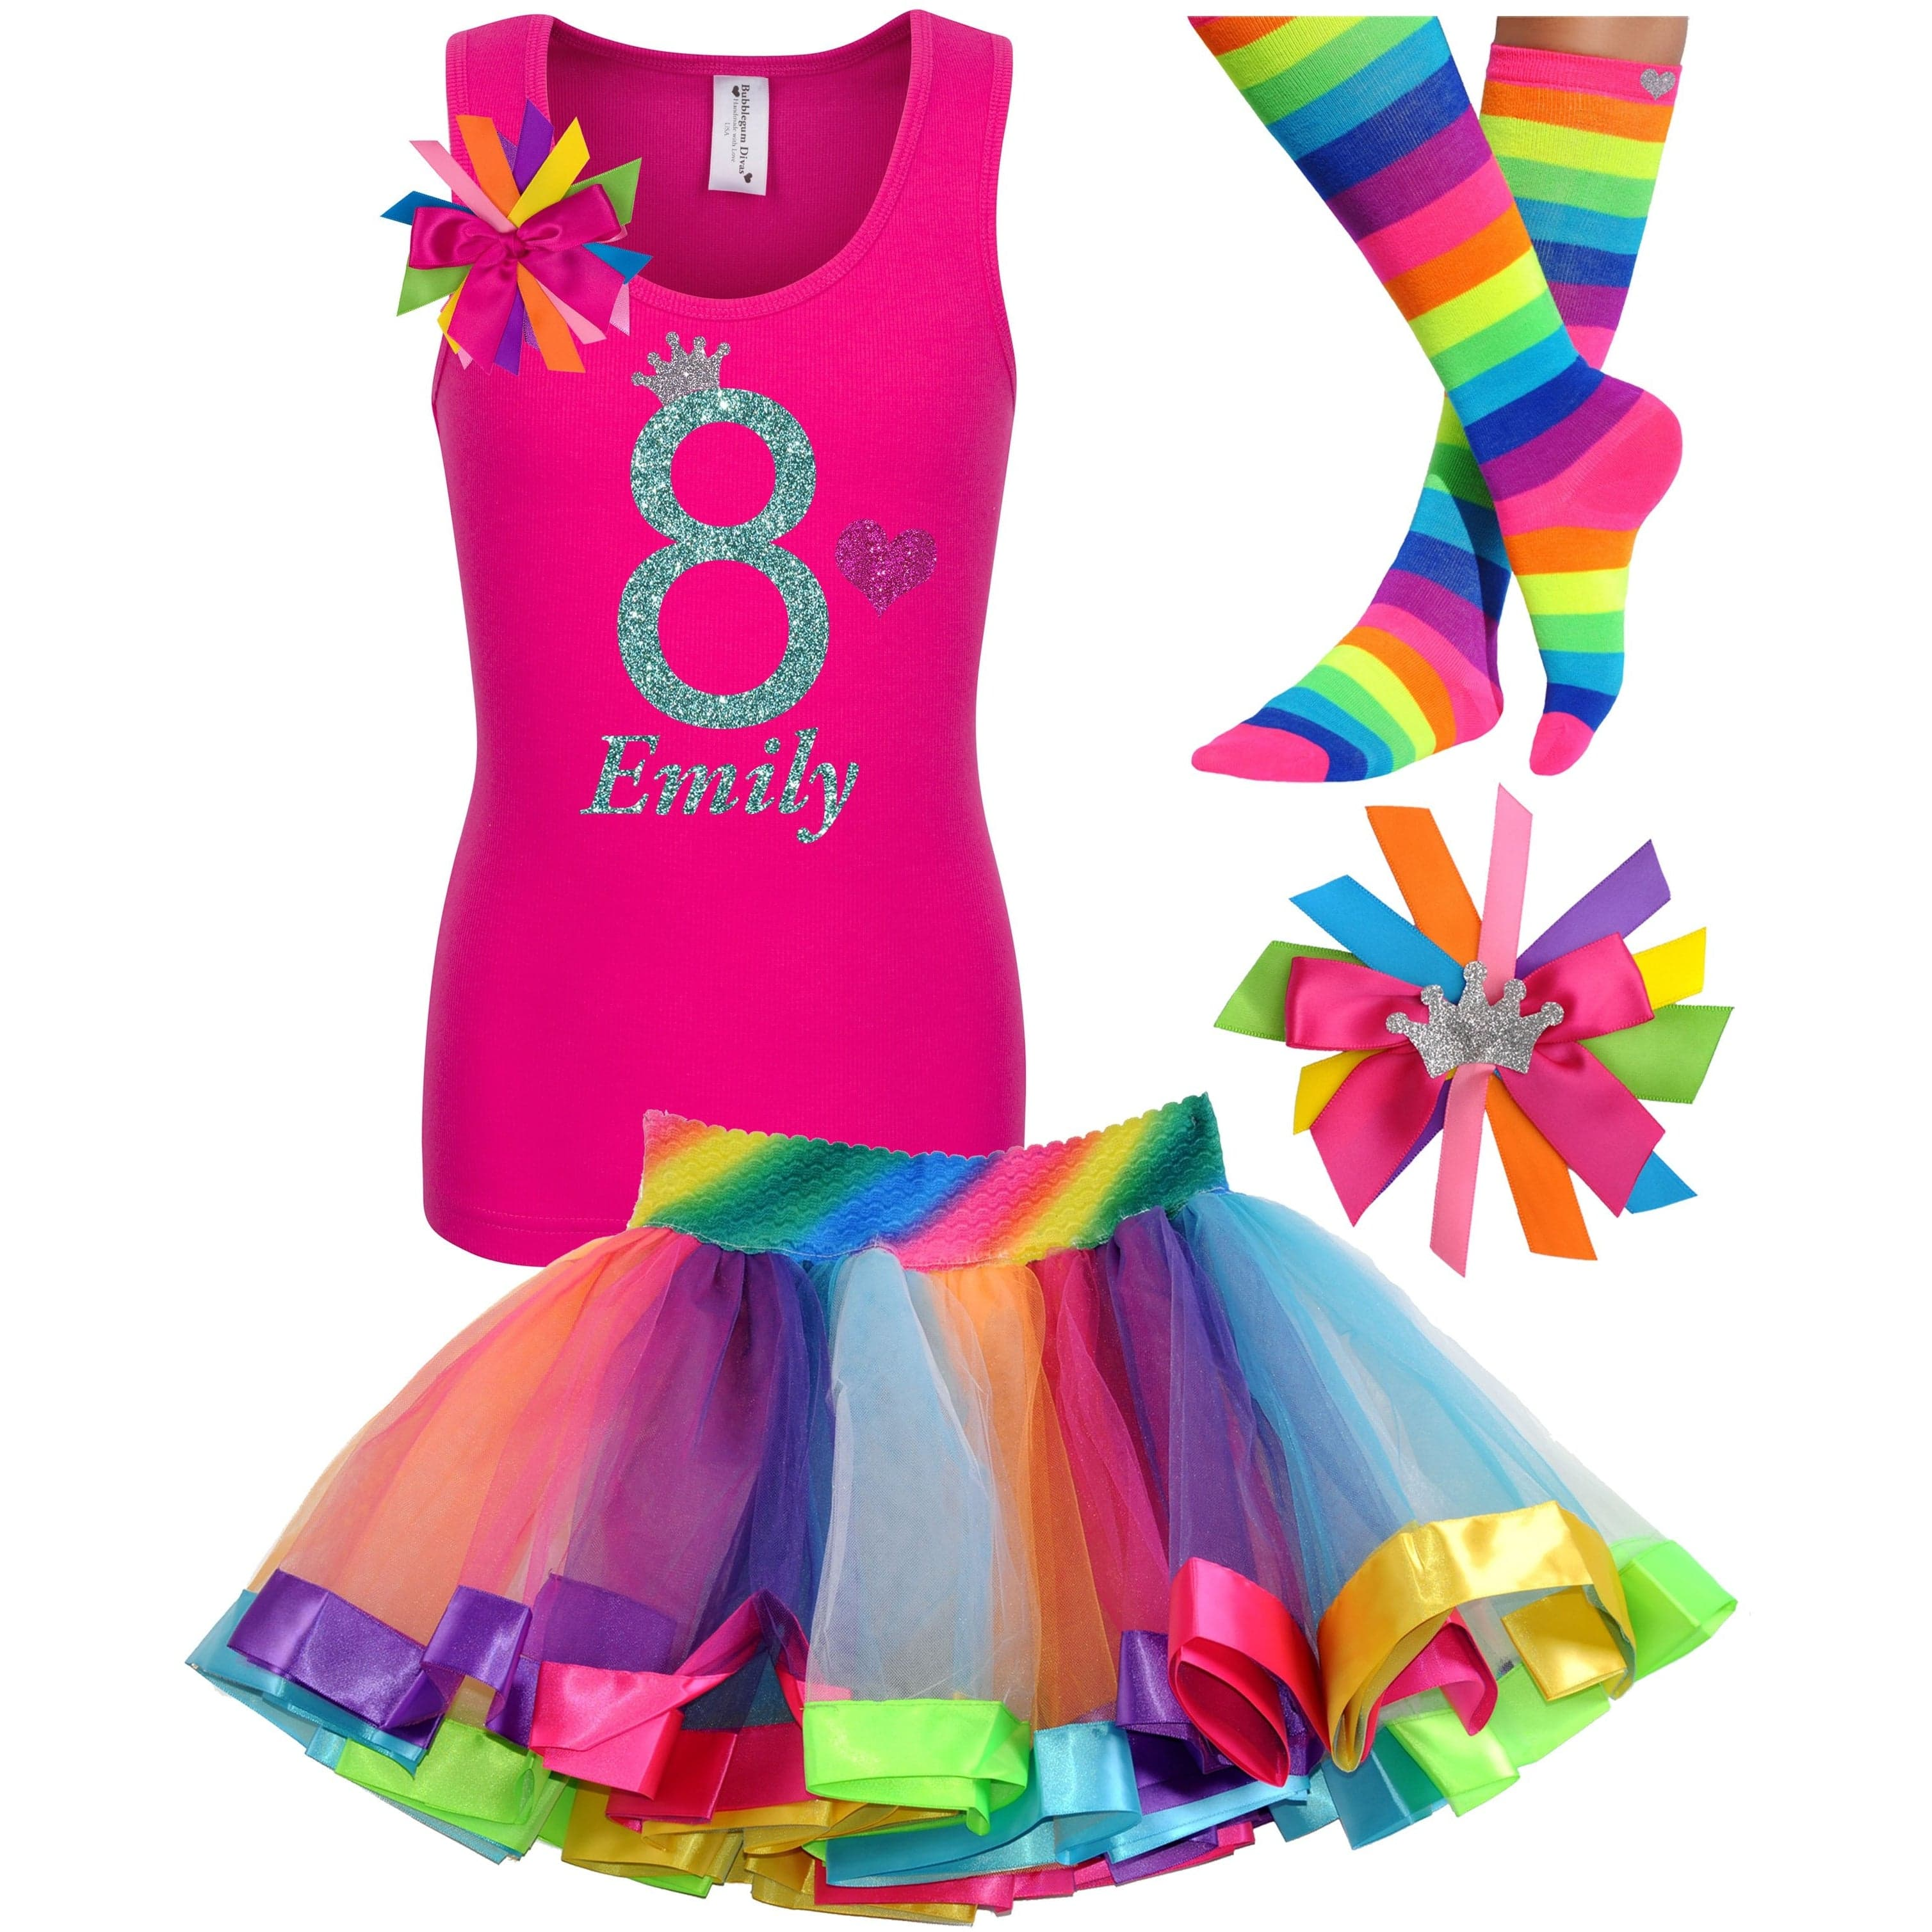 8th Birthday Shirt Rainbow Tutu Girls Party Outfit 4PC Set